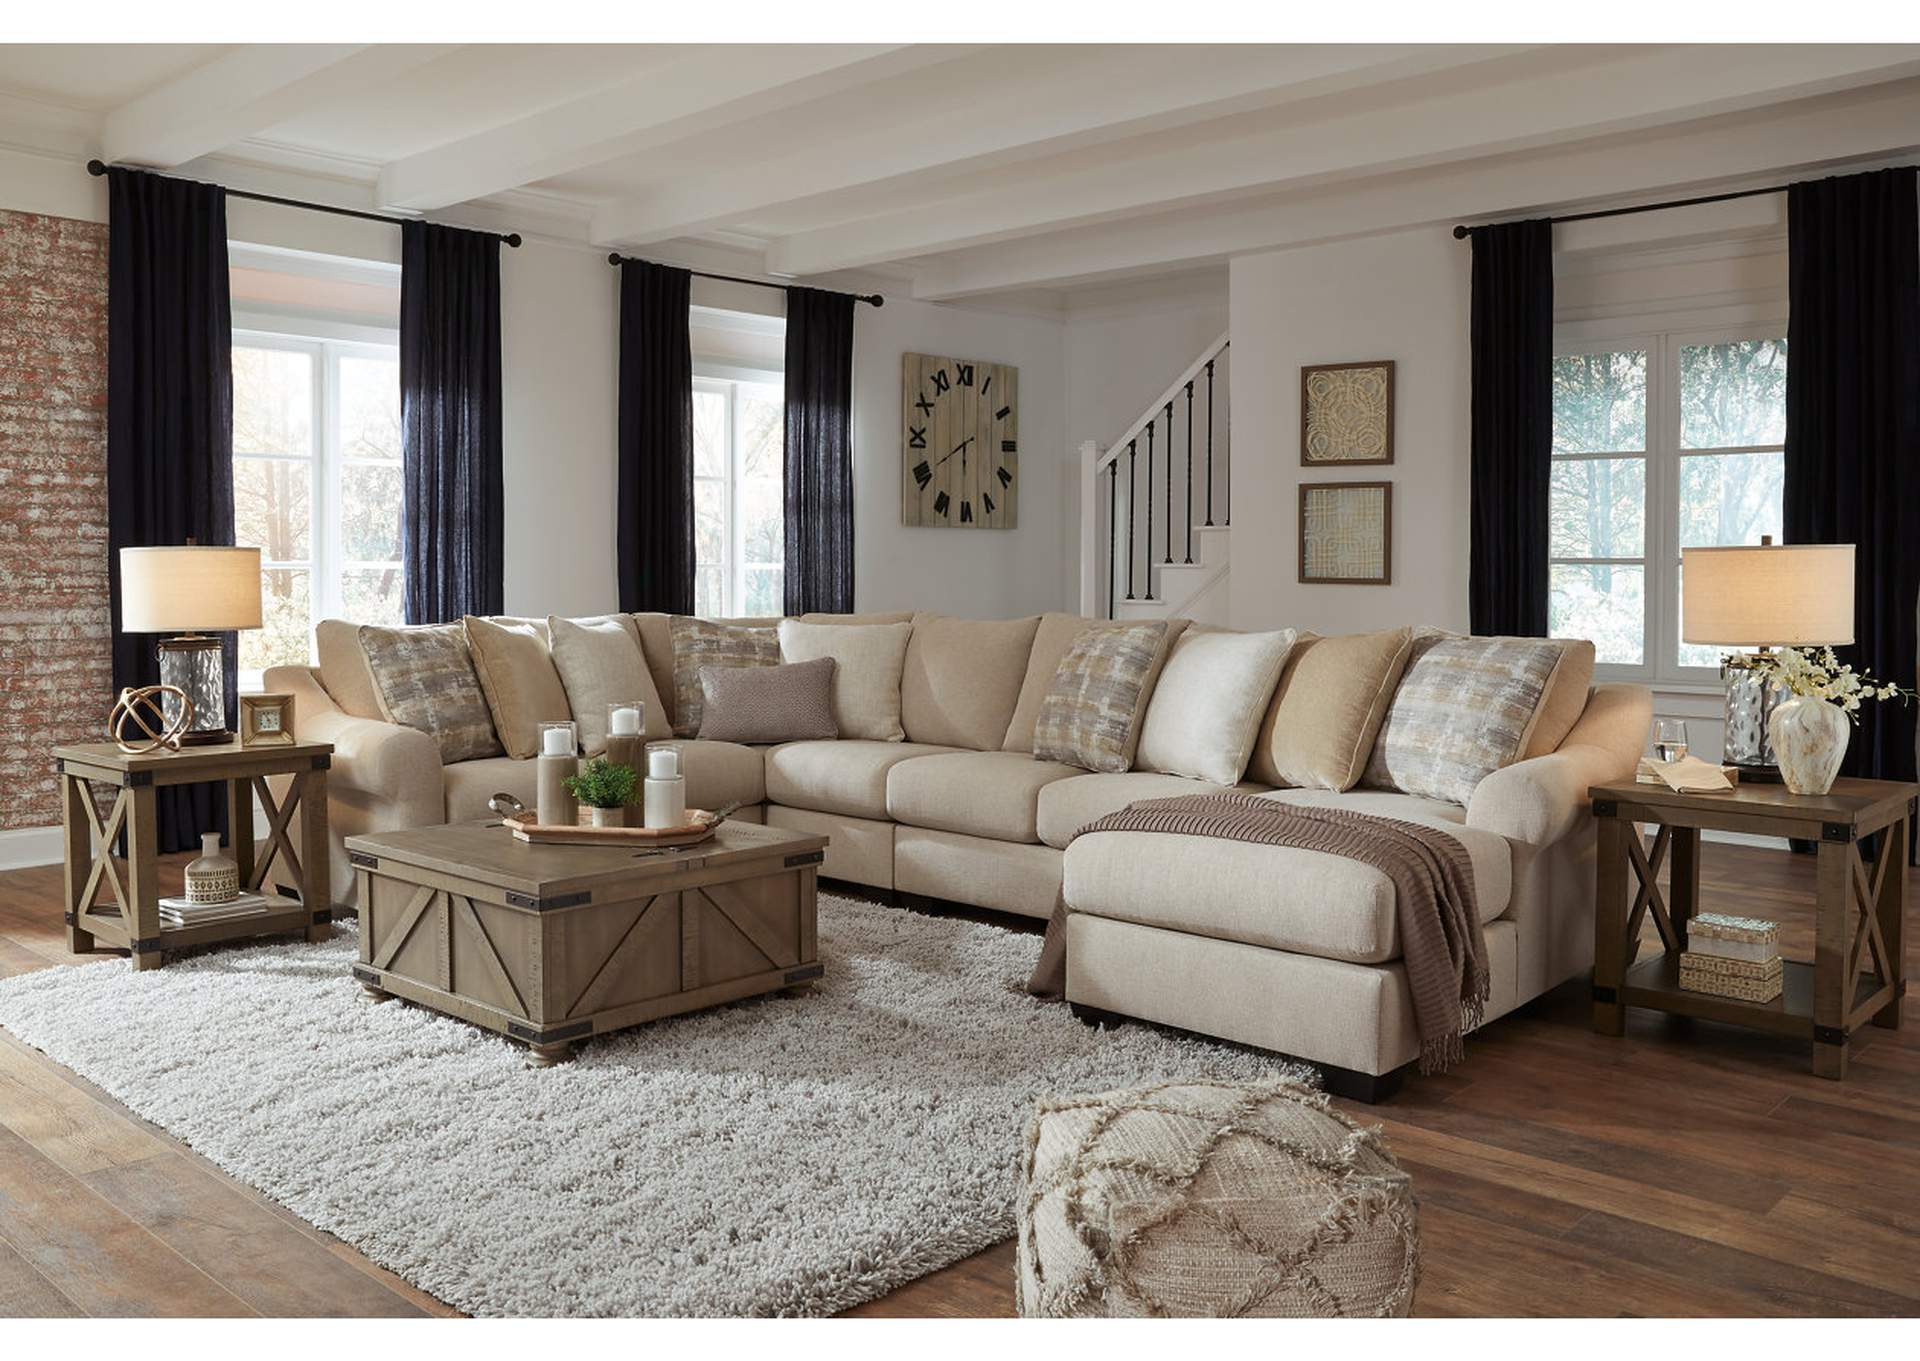 Ingleside 5-Piece Sectional with Chaise,Benchcraft